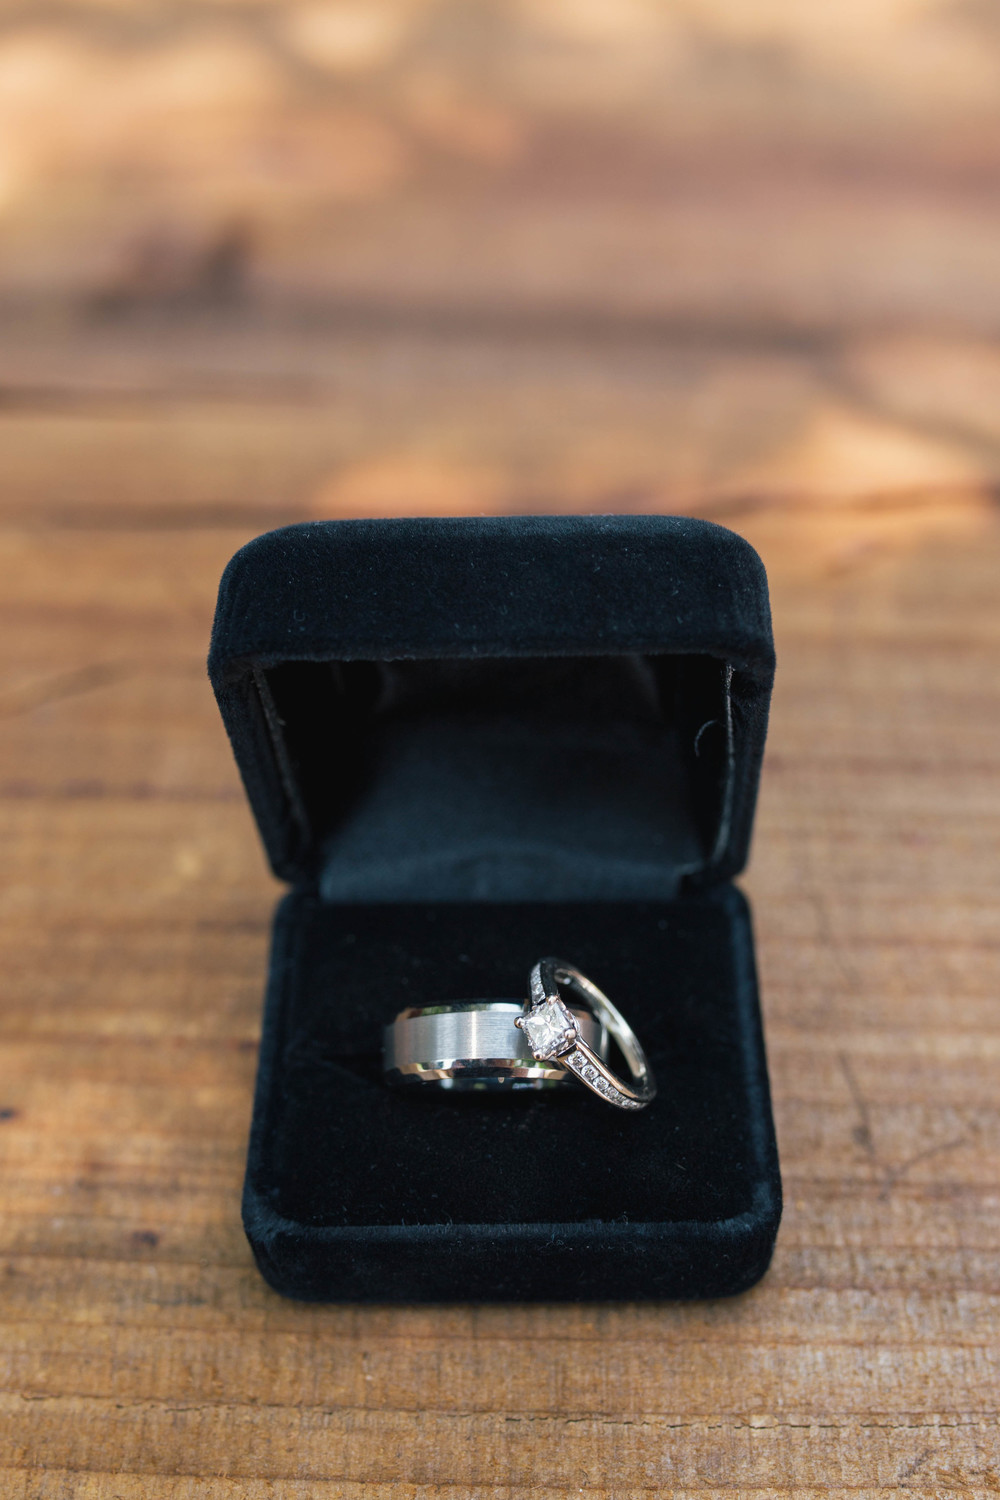 sonoma-county-wedding-photographer-details-backyard-rings-wood